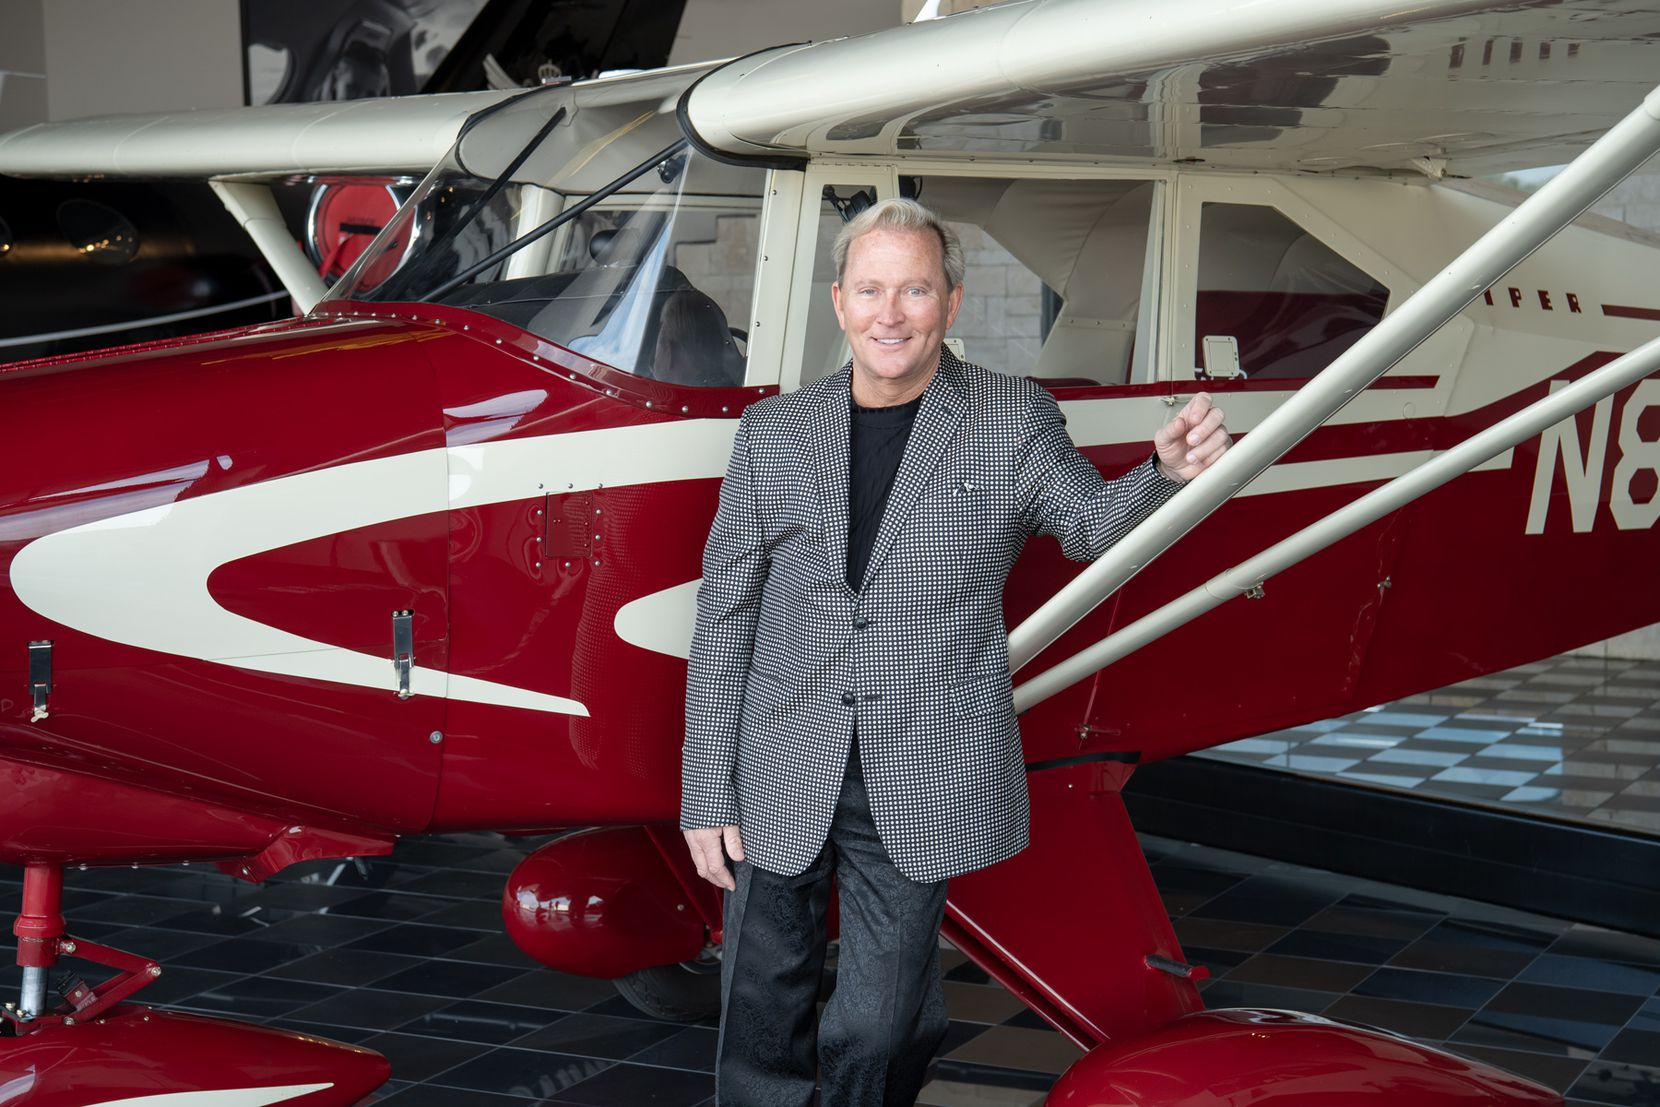 Mark Wyant with his Piper PA-22 Tri-Pacer, which won Grand Champion at the world-renowned Oshkosh AirVenture in 2017.